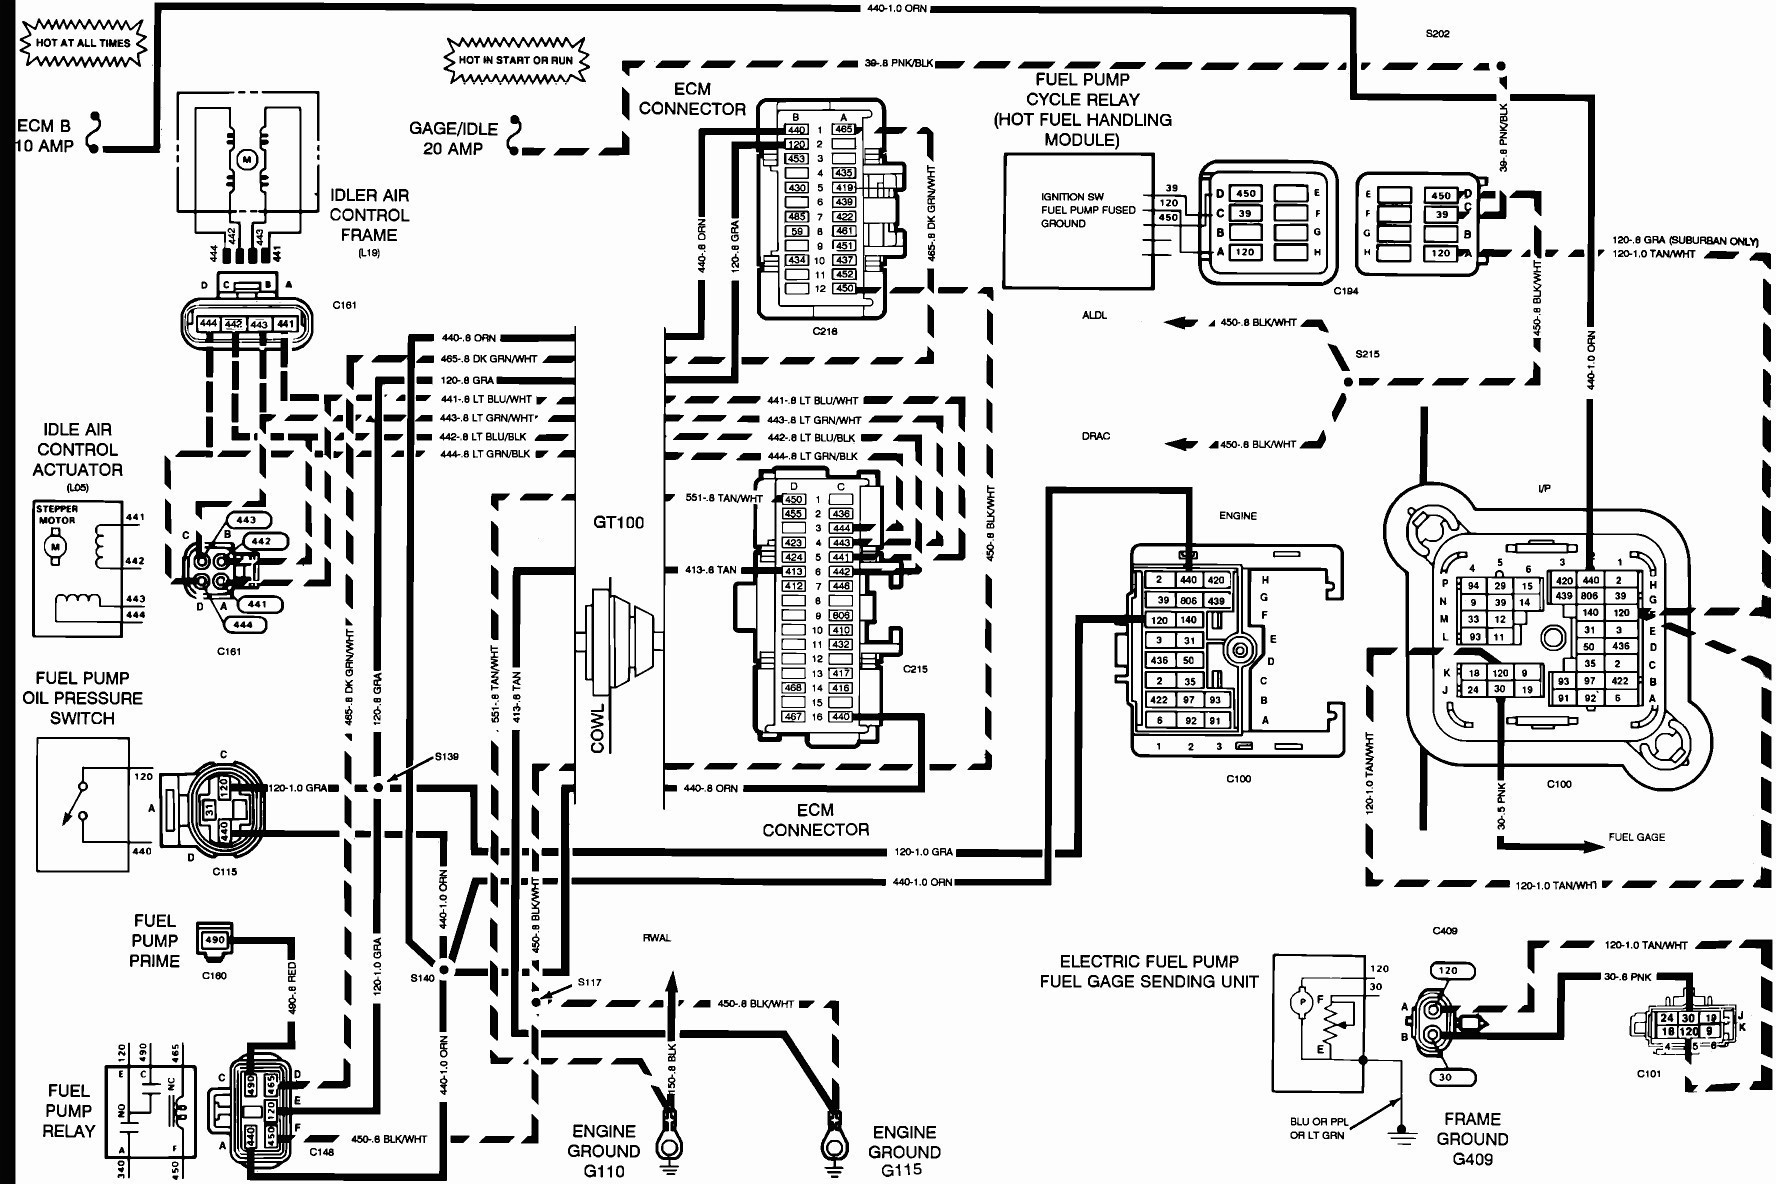 2013 Ford F53 Wiring Diagram Auto Electrical Gas Tank Related With